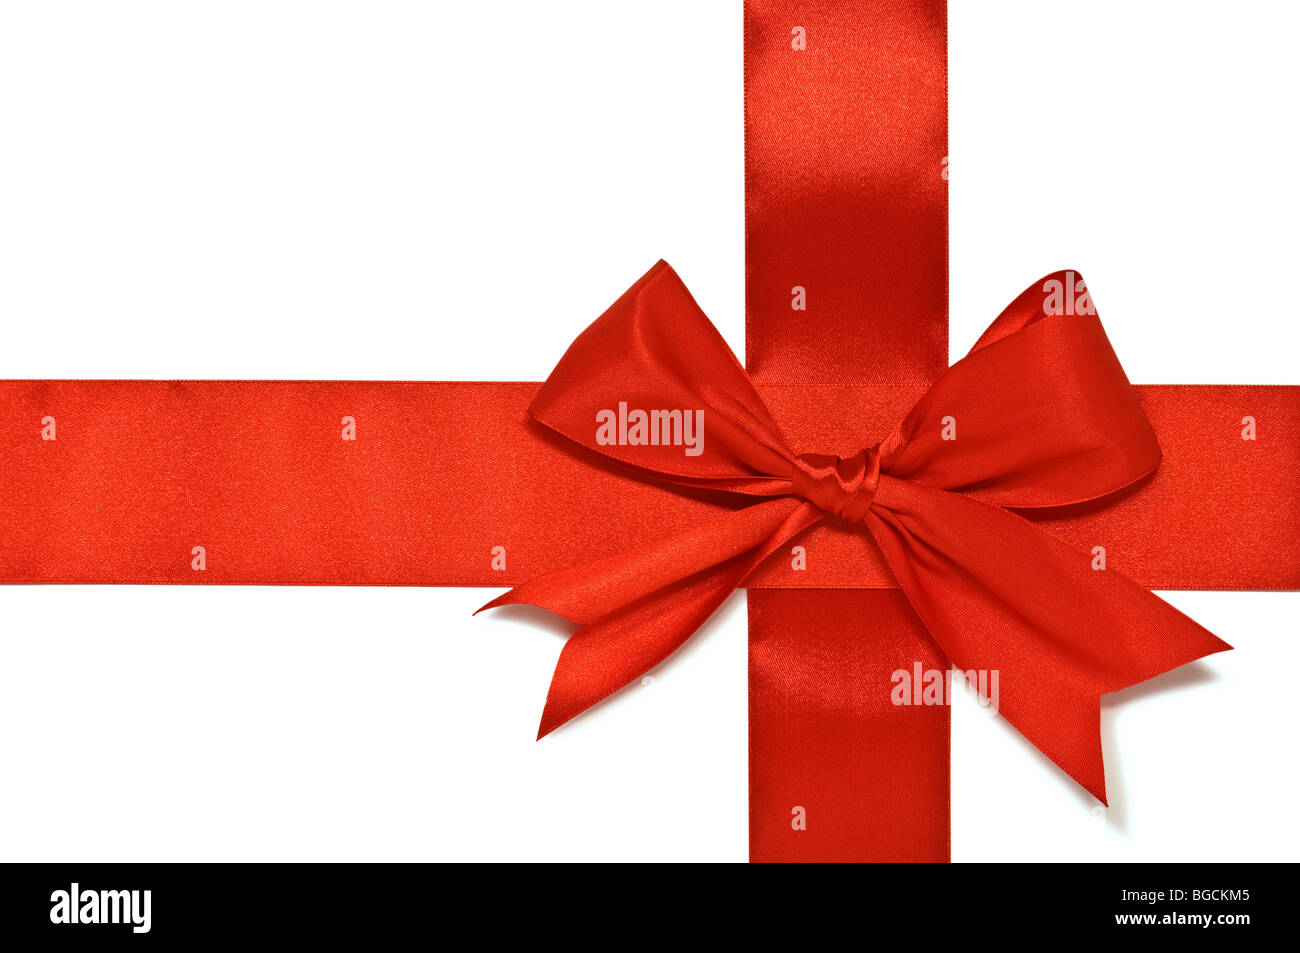 ribbon and bow isolated - Stock Image